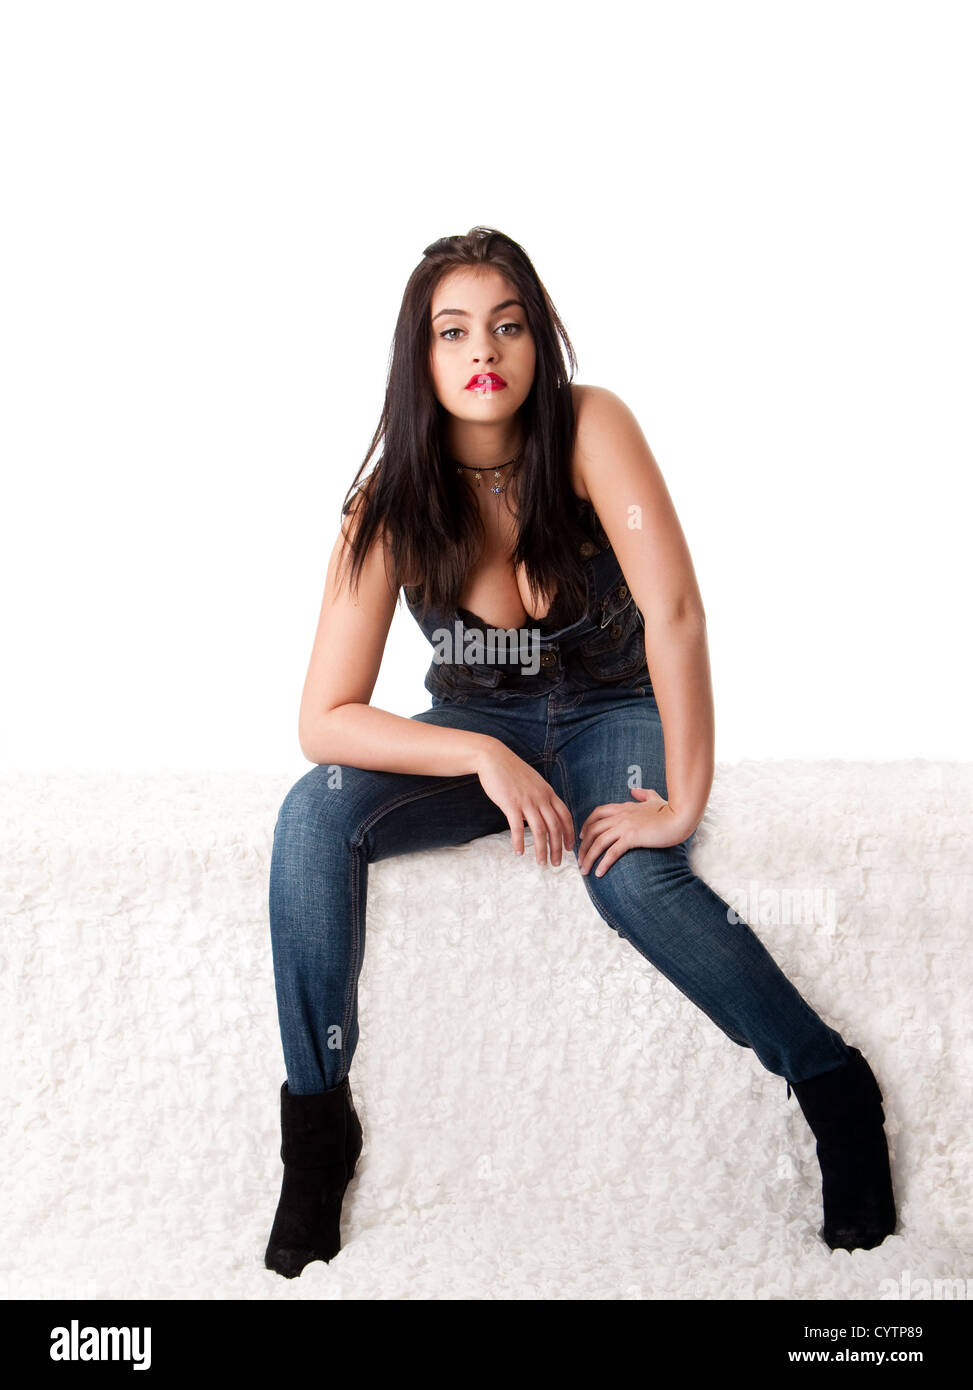 Teen girl model picture